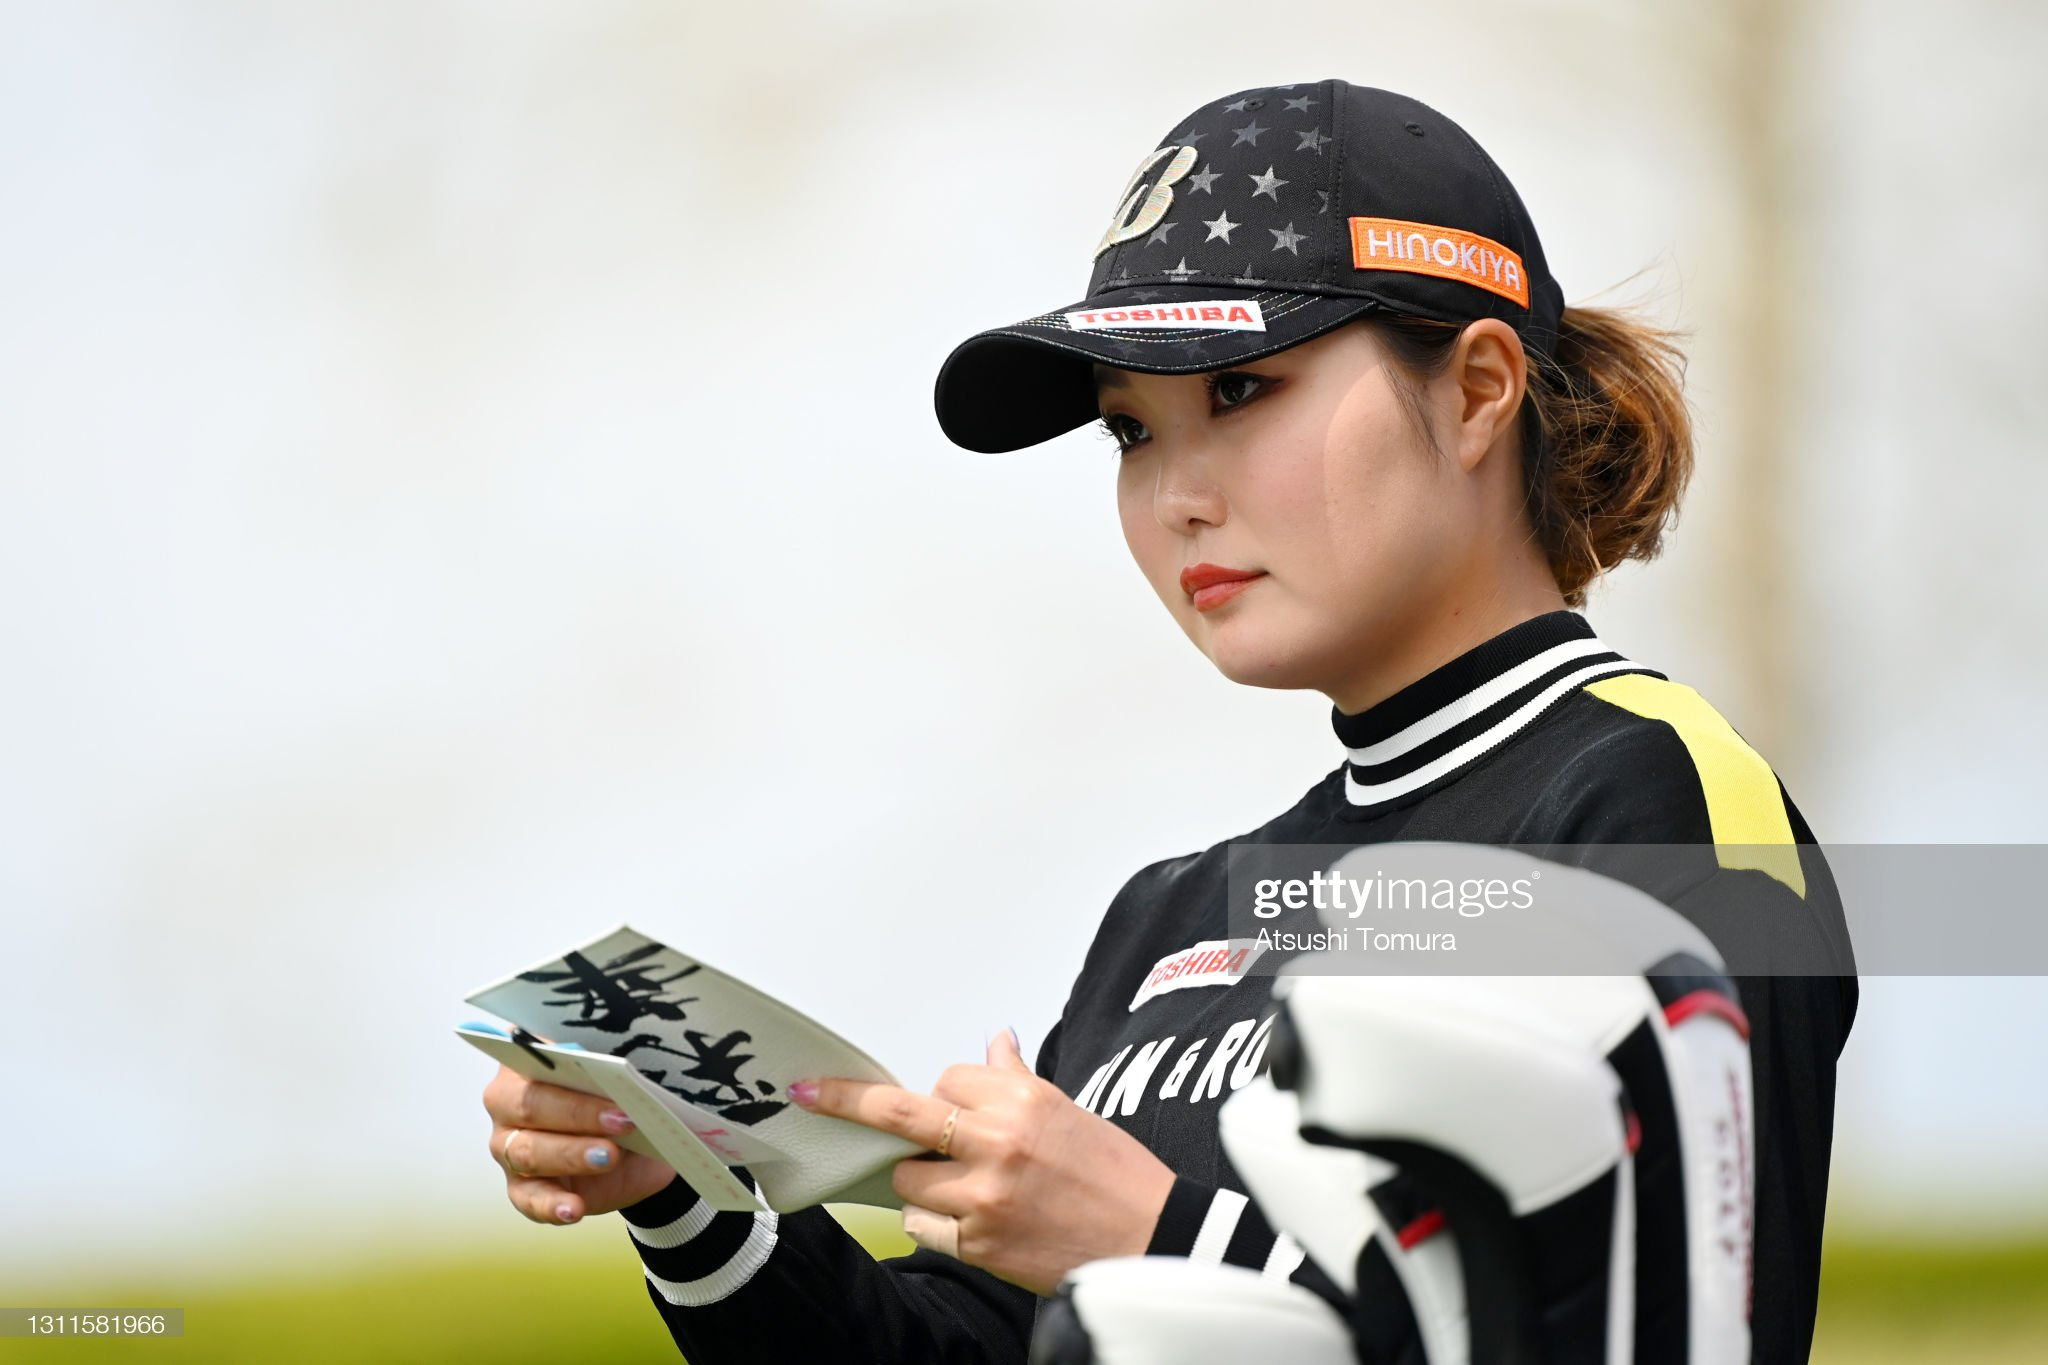 https://media.gettyimages.com/photos/sayaka-takahashi-of-japan-checks-her-yardage-book-on-the-1st-tee-the-picture-id1311581966?s=2048x2048